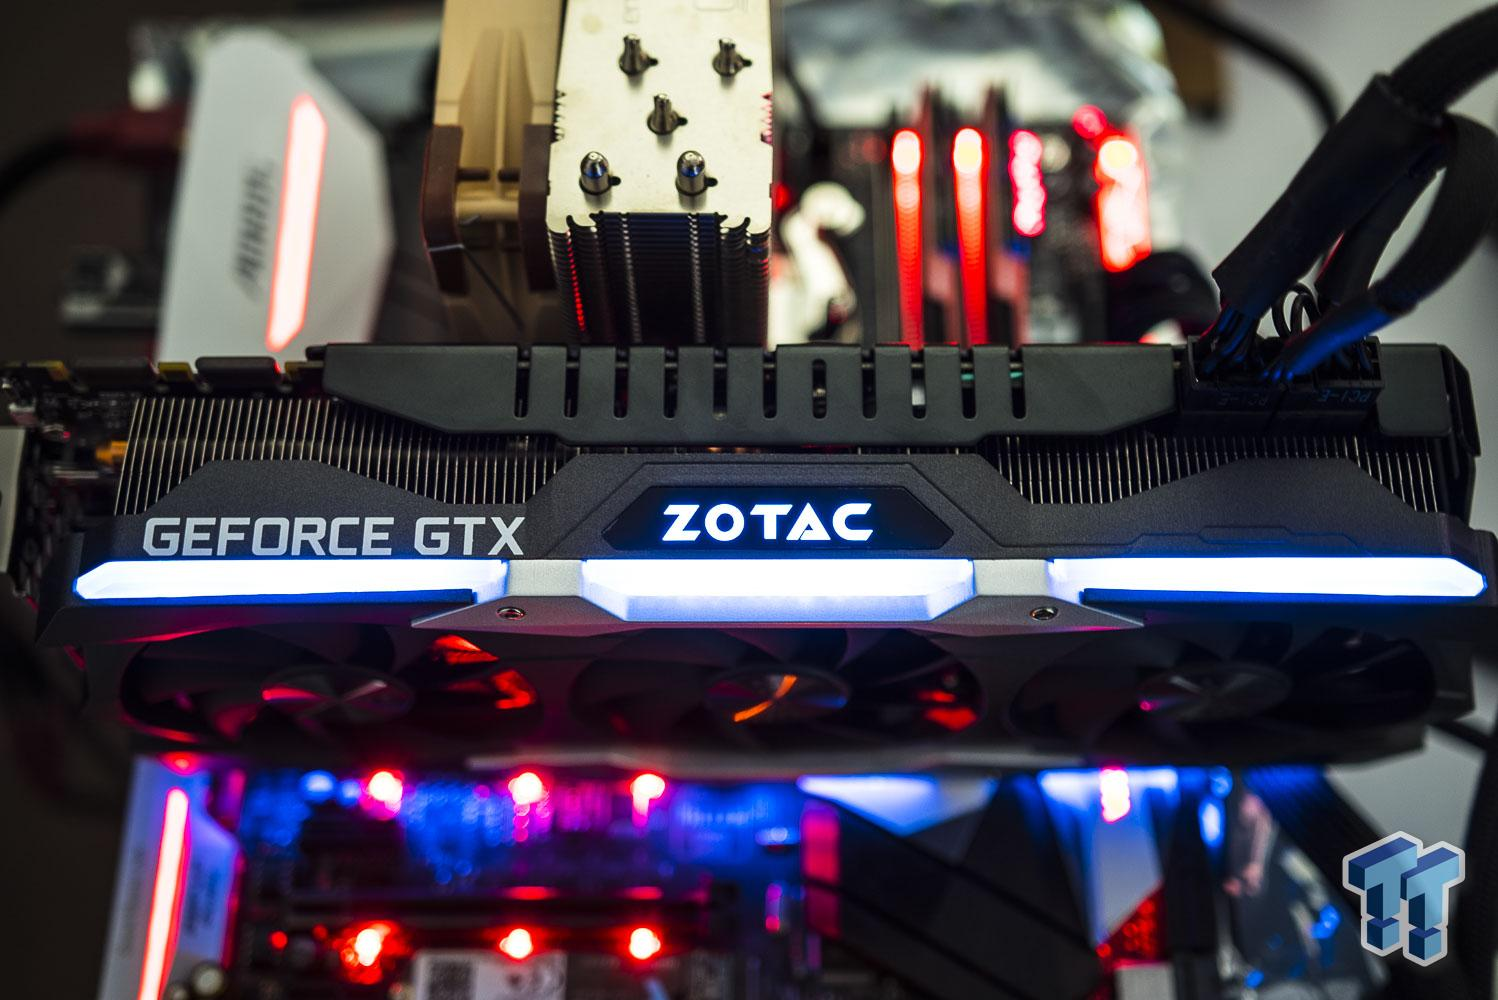 ZOTAC GeForce GTX 1080 Ti AMP! Extreme Edition Review